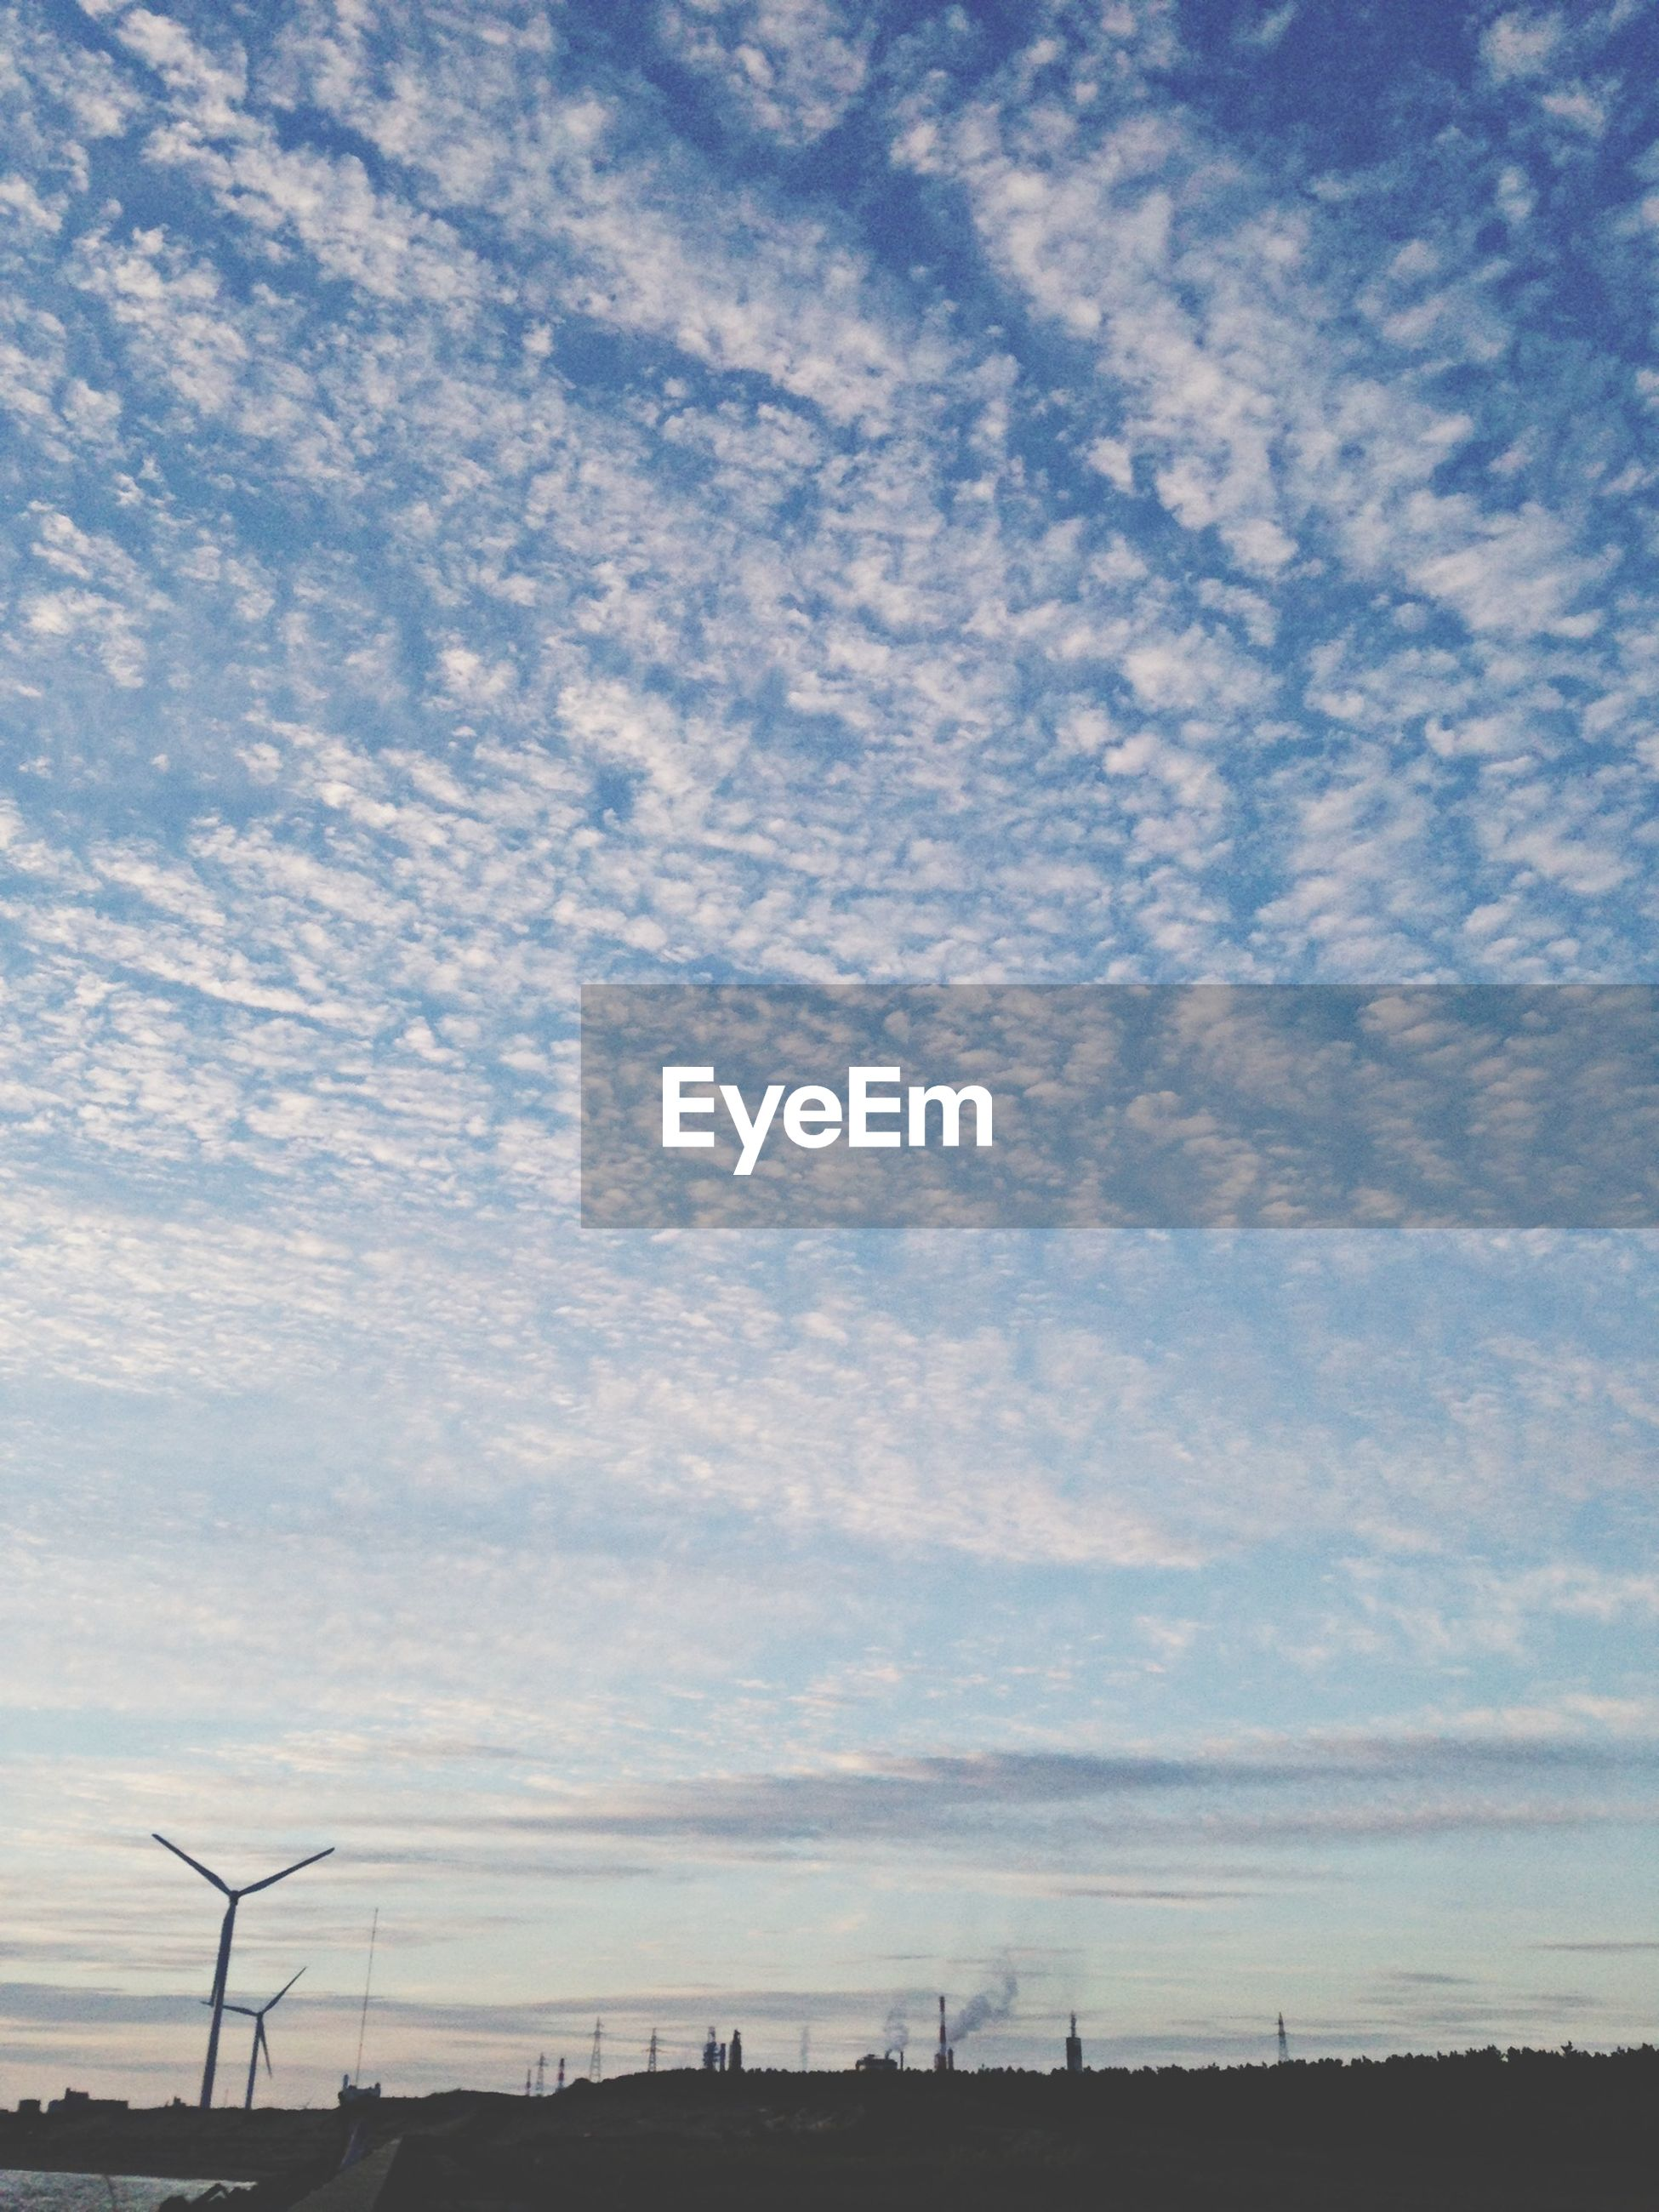 sky, cloud - sky, tranquility, tranquil scene, scenics, cloud, beauty in nature, nature, cloudy, landscape, low angle view, electricity pylon, fuel and power generation, blue, outdoors, connection, no people, field, silhouette, day